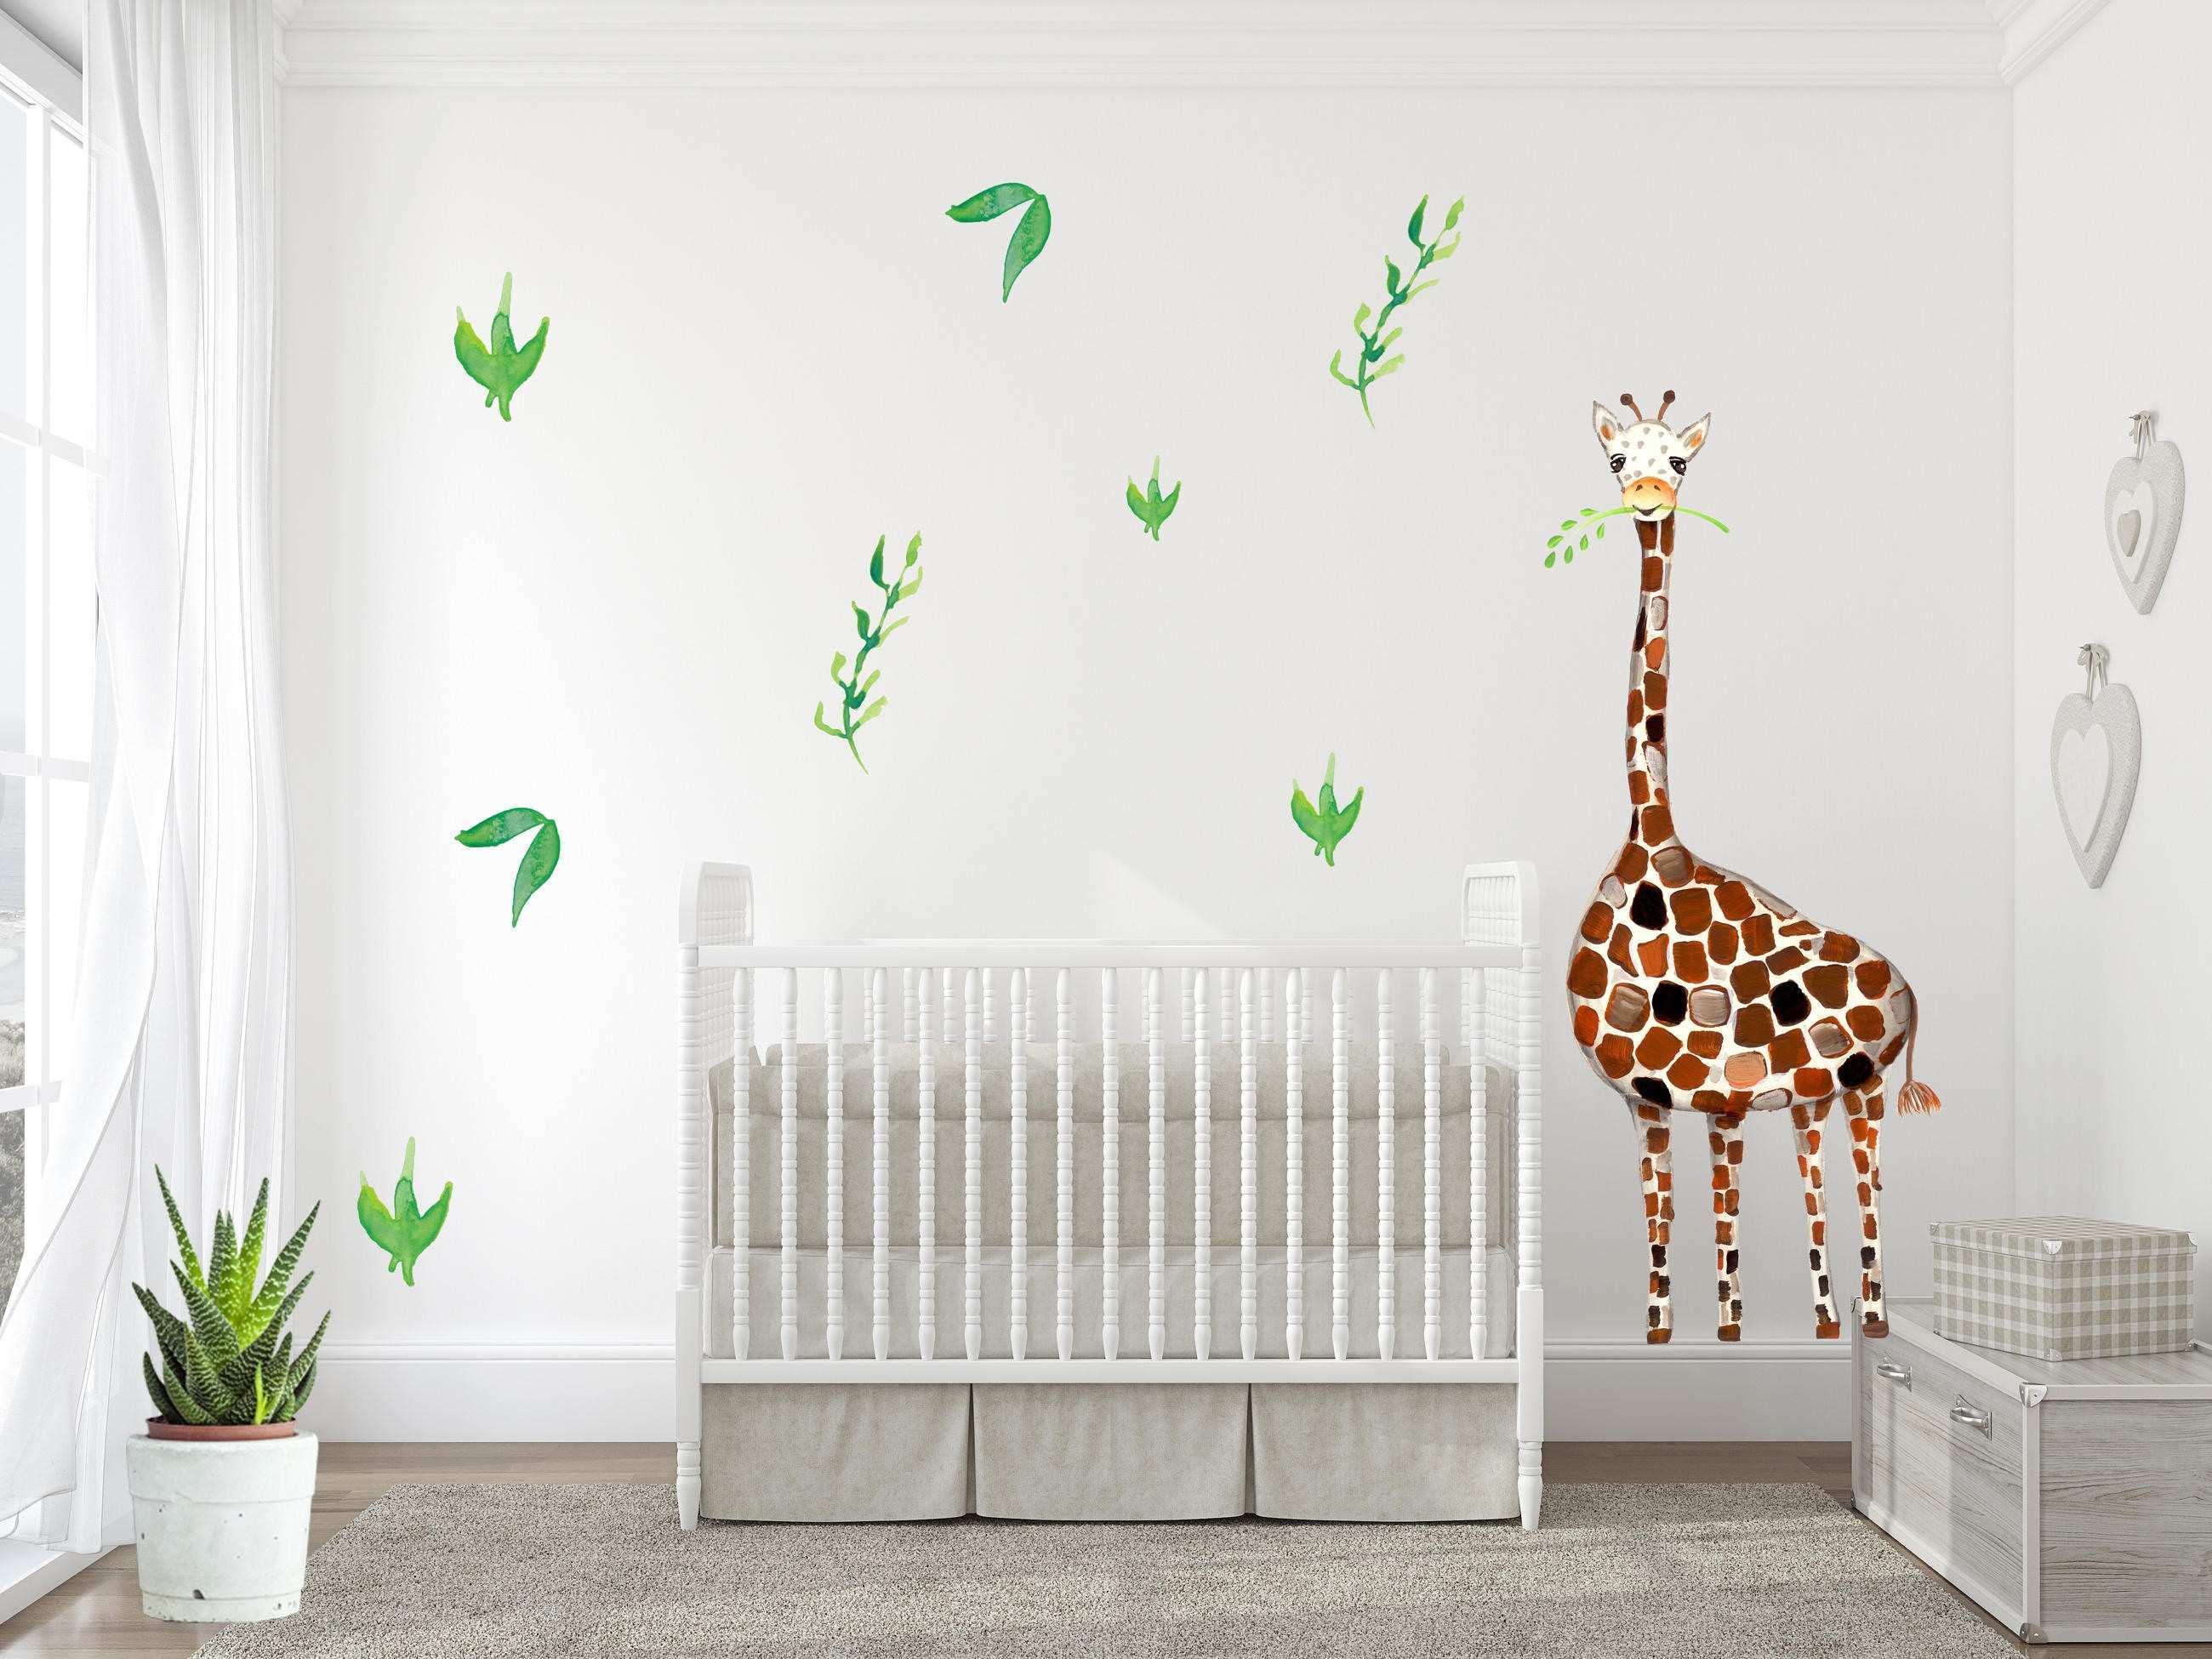 Giraffe Wall Decal Baby Room Nursery decor Safari room decor